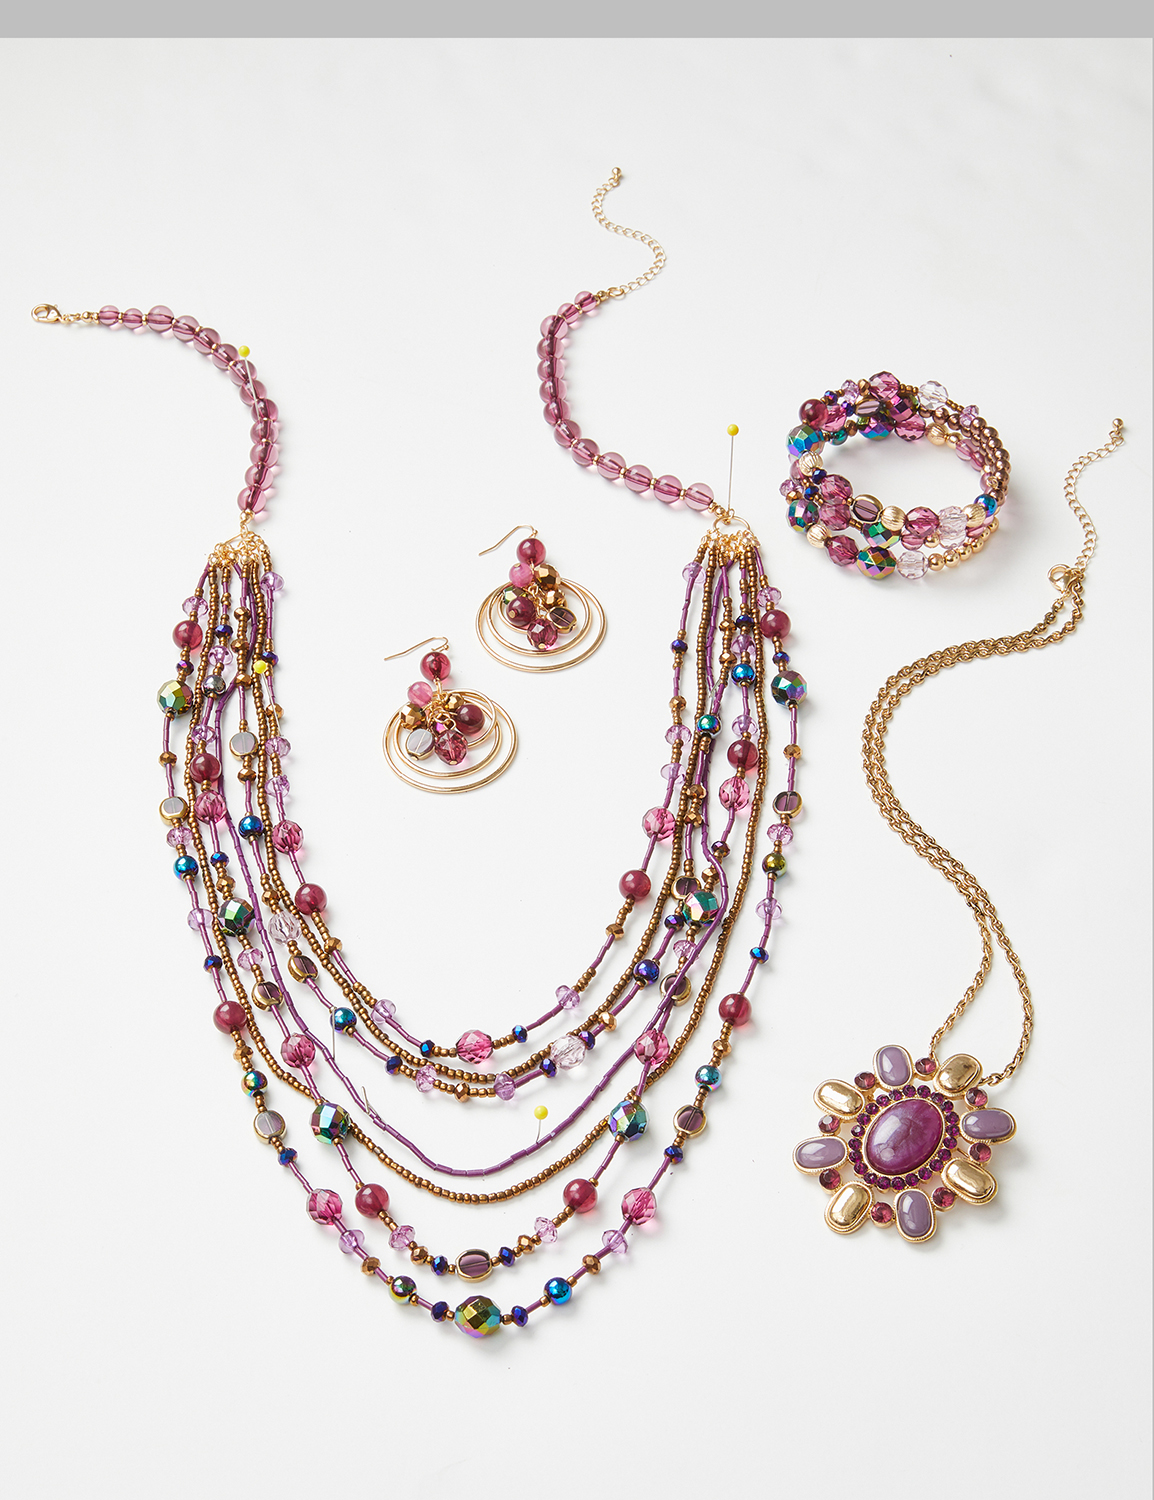 product laydown of multi-beaded necklace, earrings, and bracelet jewelry set